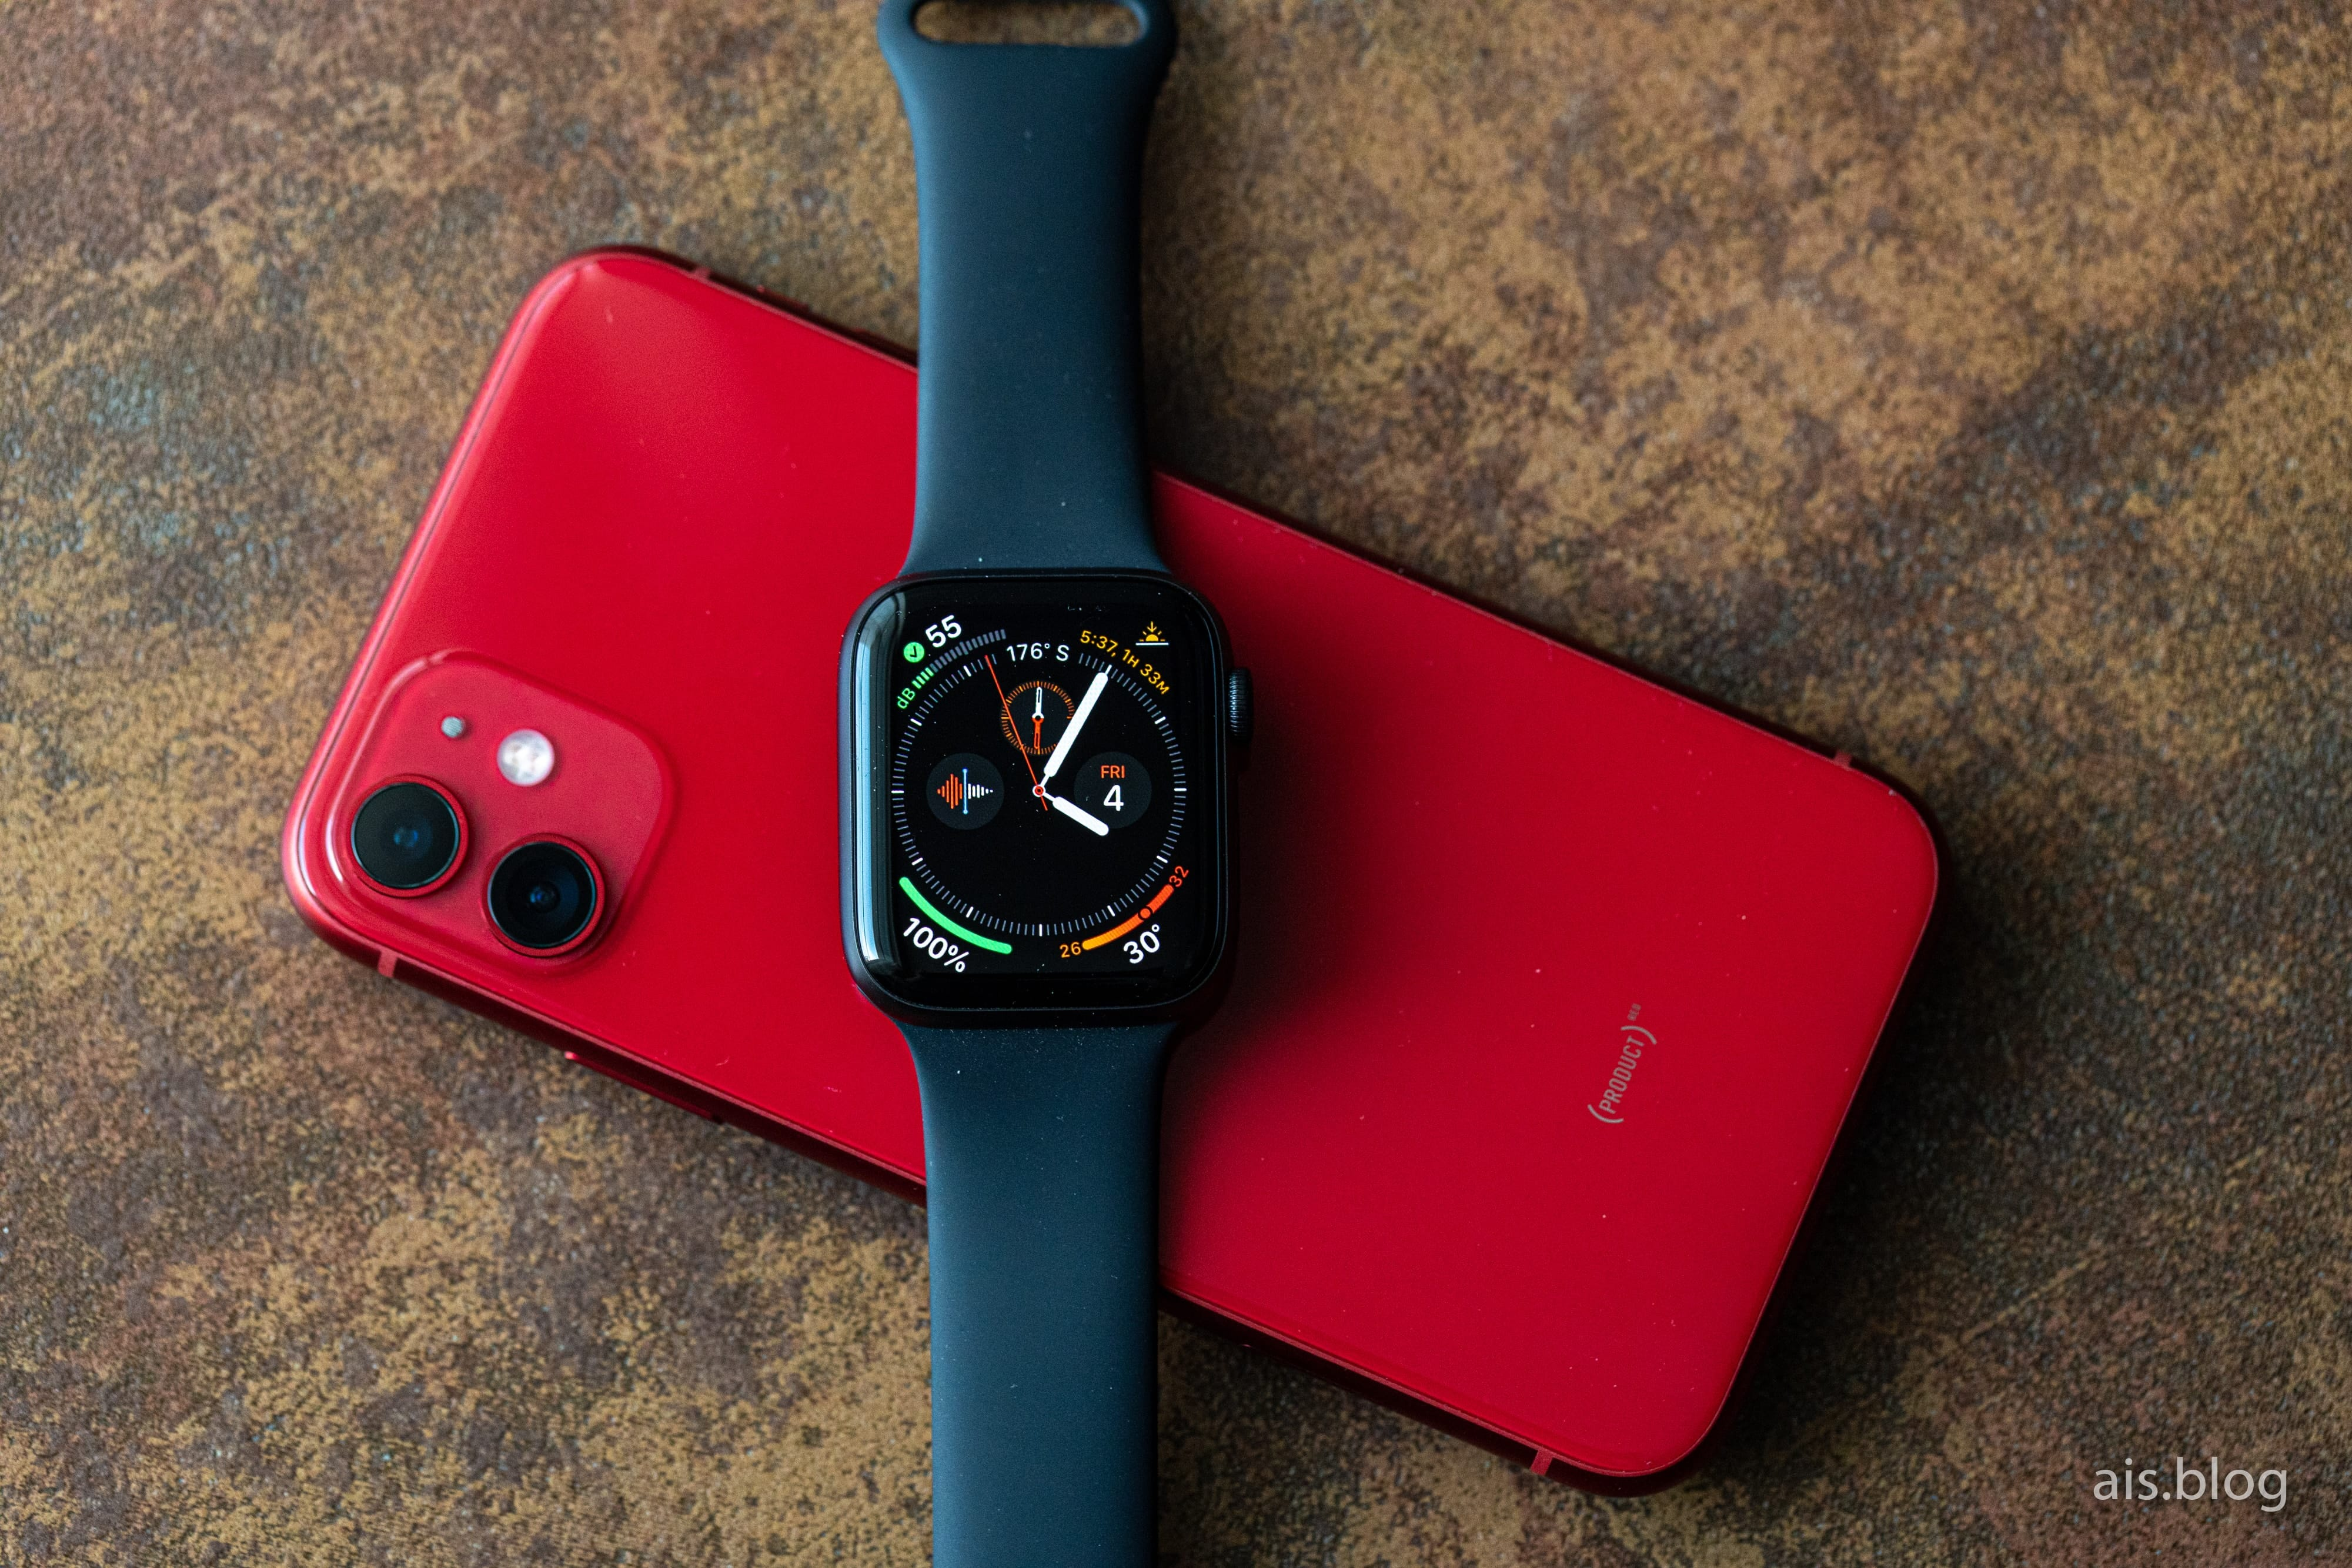 Apple Watch Series 5 review – The perfect iPhone companion